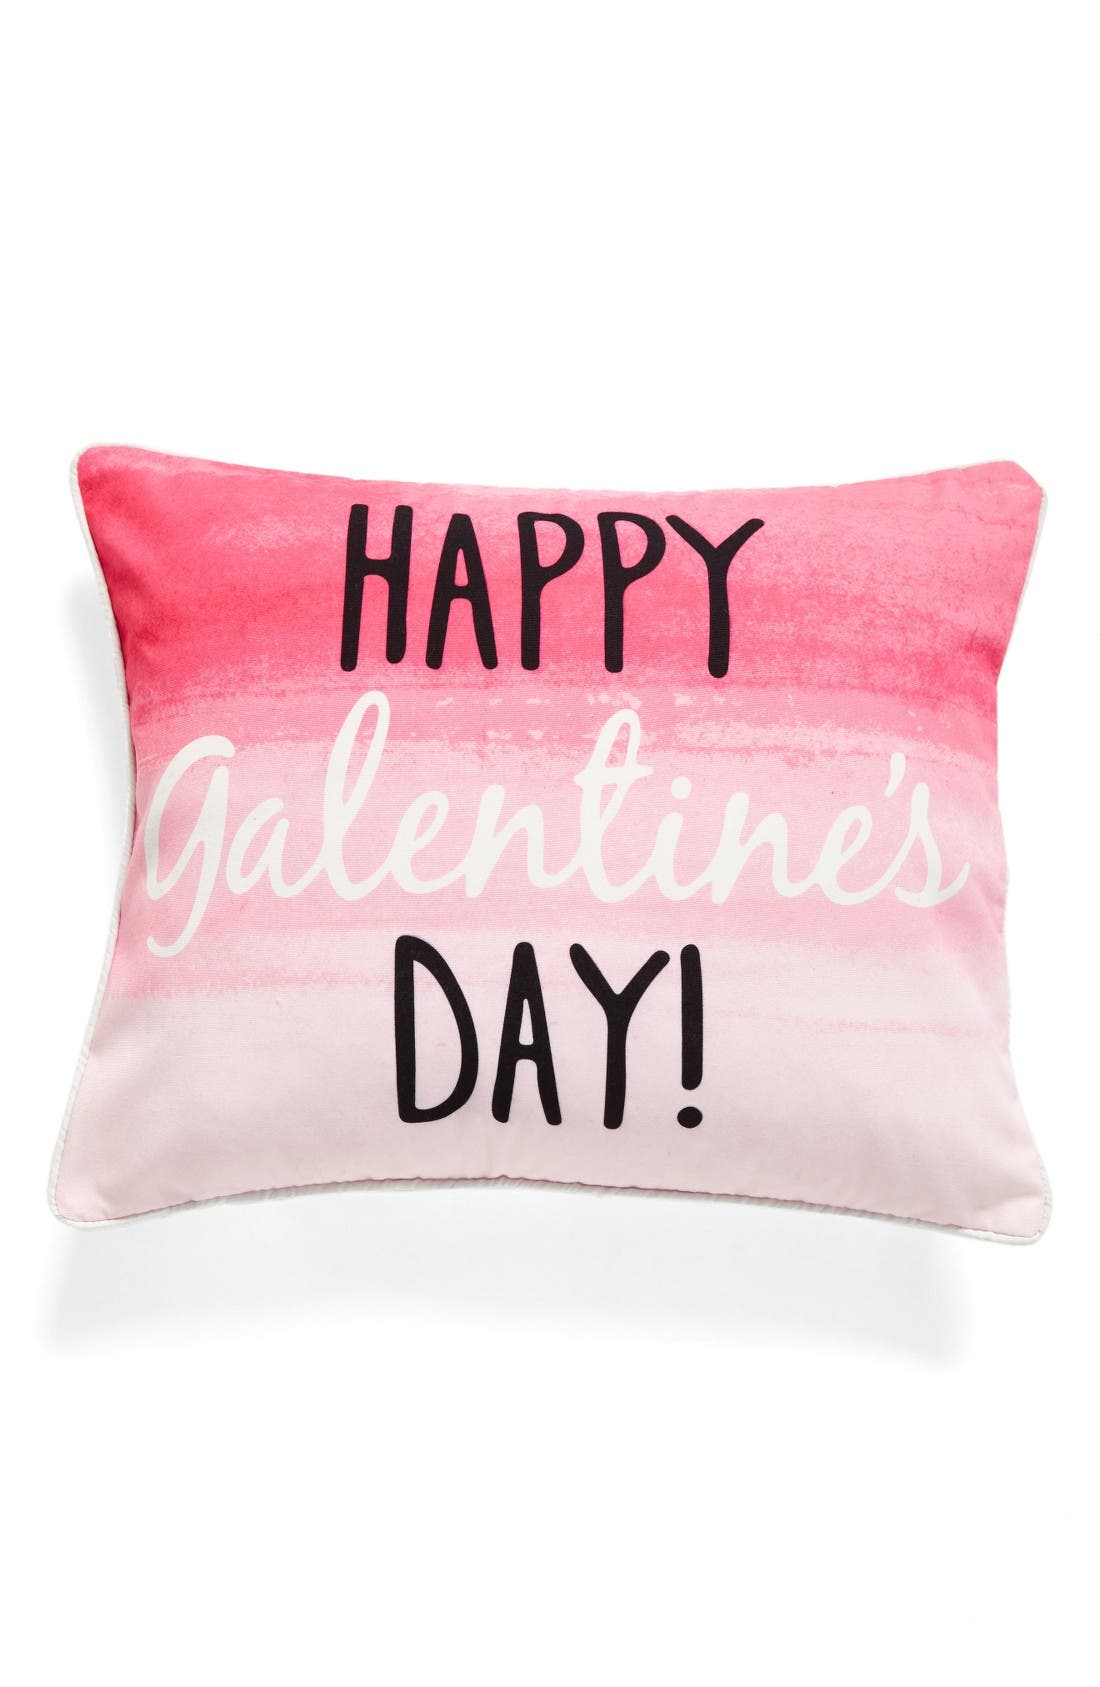 Happy Galentine's Day Pillow,                             Main thumbnail 1, color,                             Pink